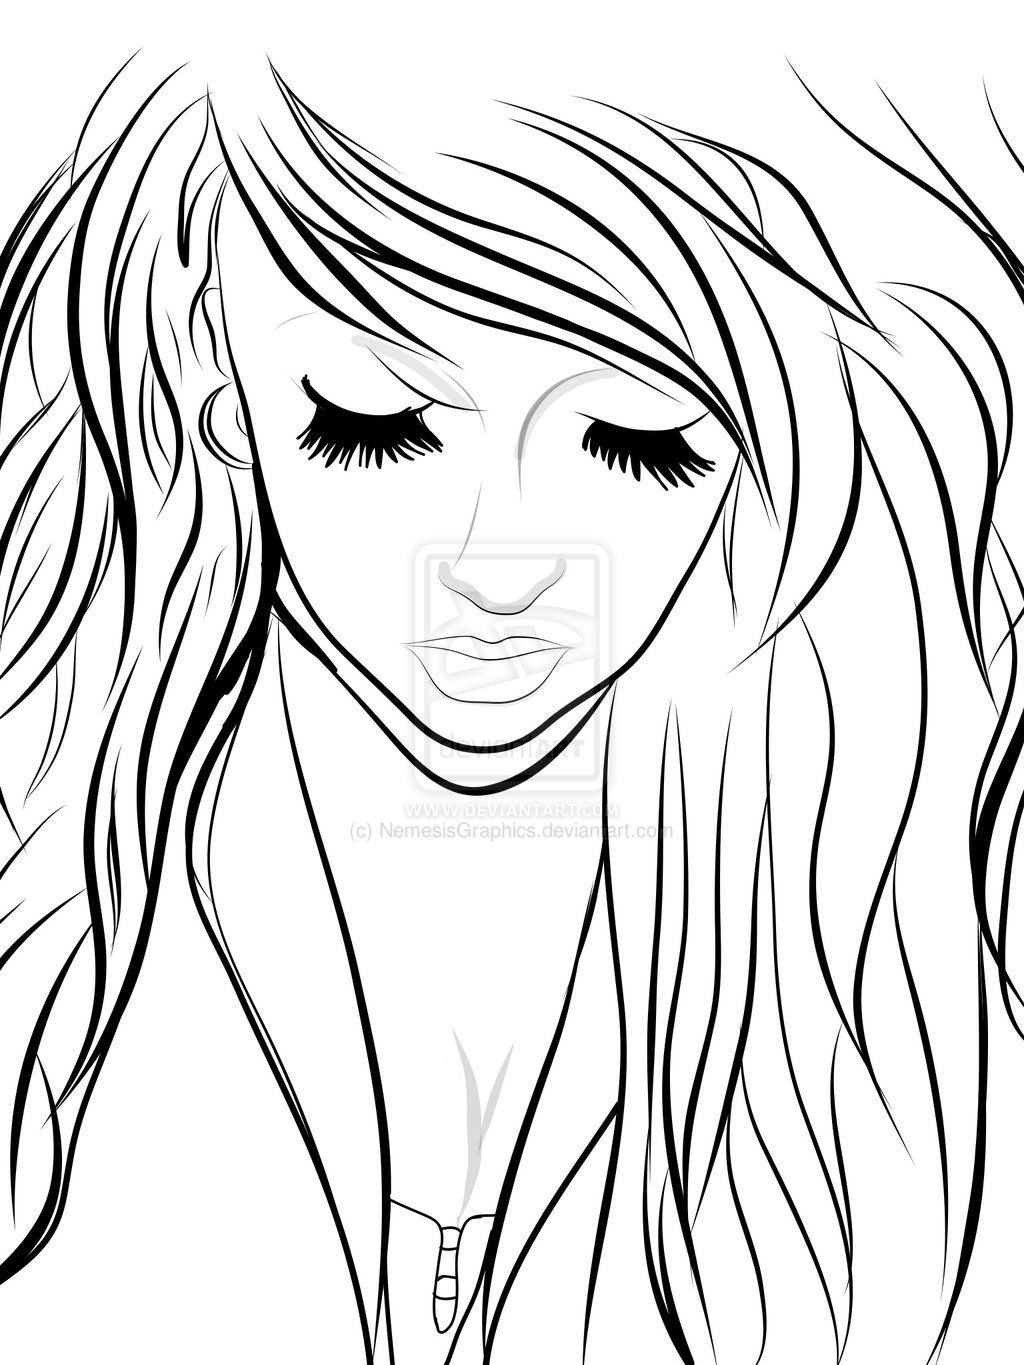 Simple Line Art Tumblr : Model hipster drawing ideas tumblr line art